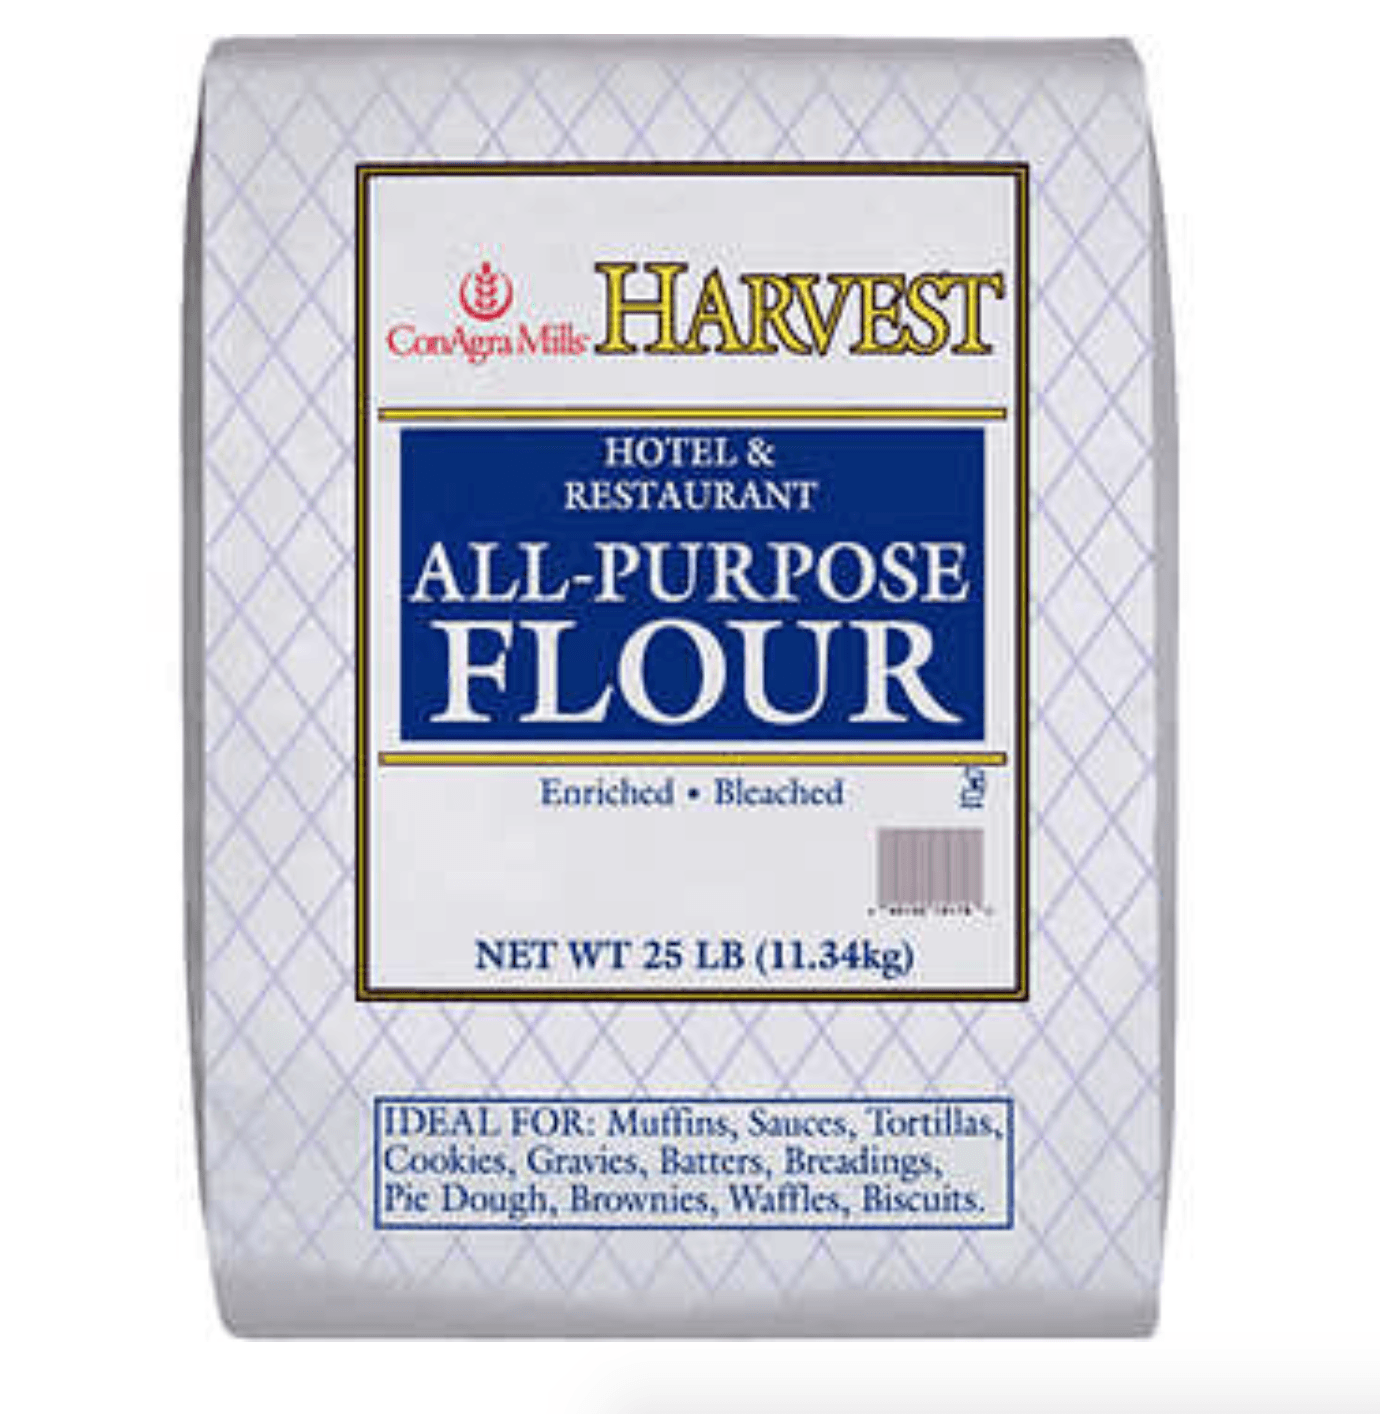 Harvest All-Purpose Flour